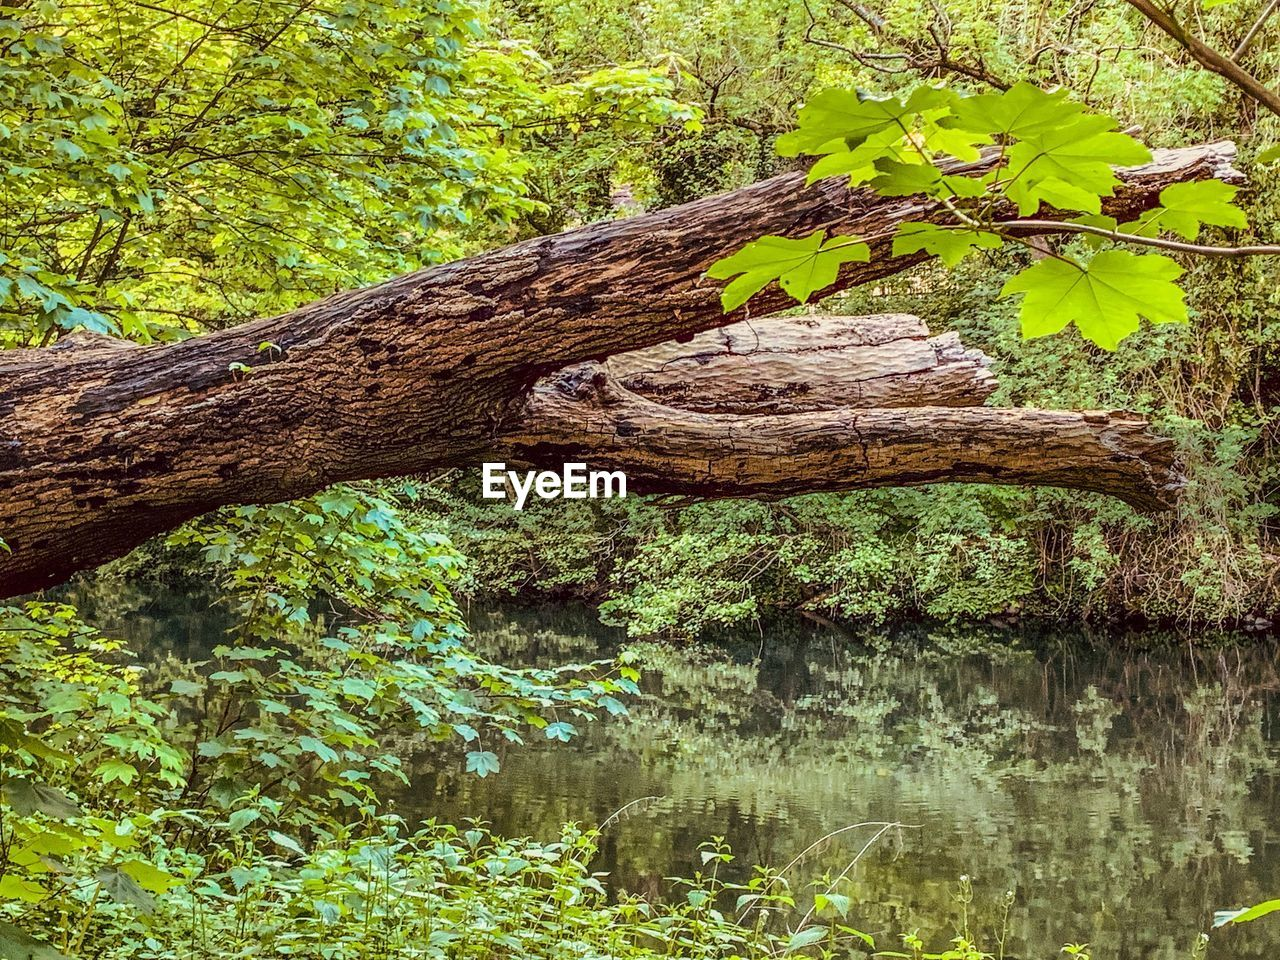 plant, tree, water, nature, tree trunk, green color, trunk, growth, day, lake, no people, tranquility, plant part, outdoors, wood - material, branch, beauty in nature, waterfront, reflection, bark